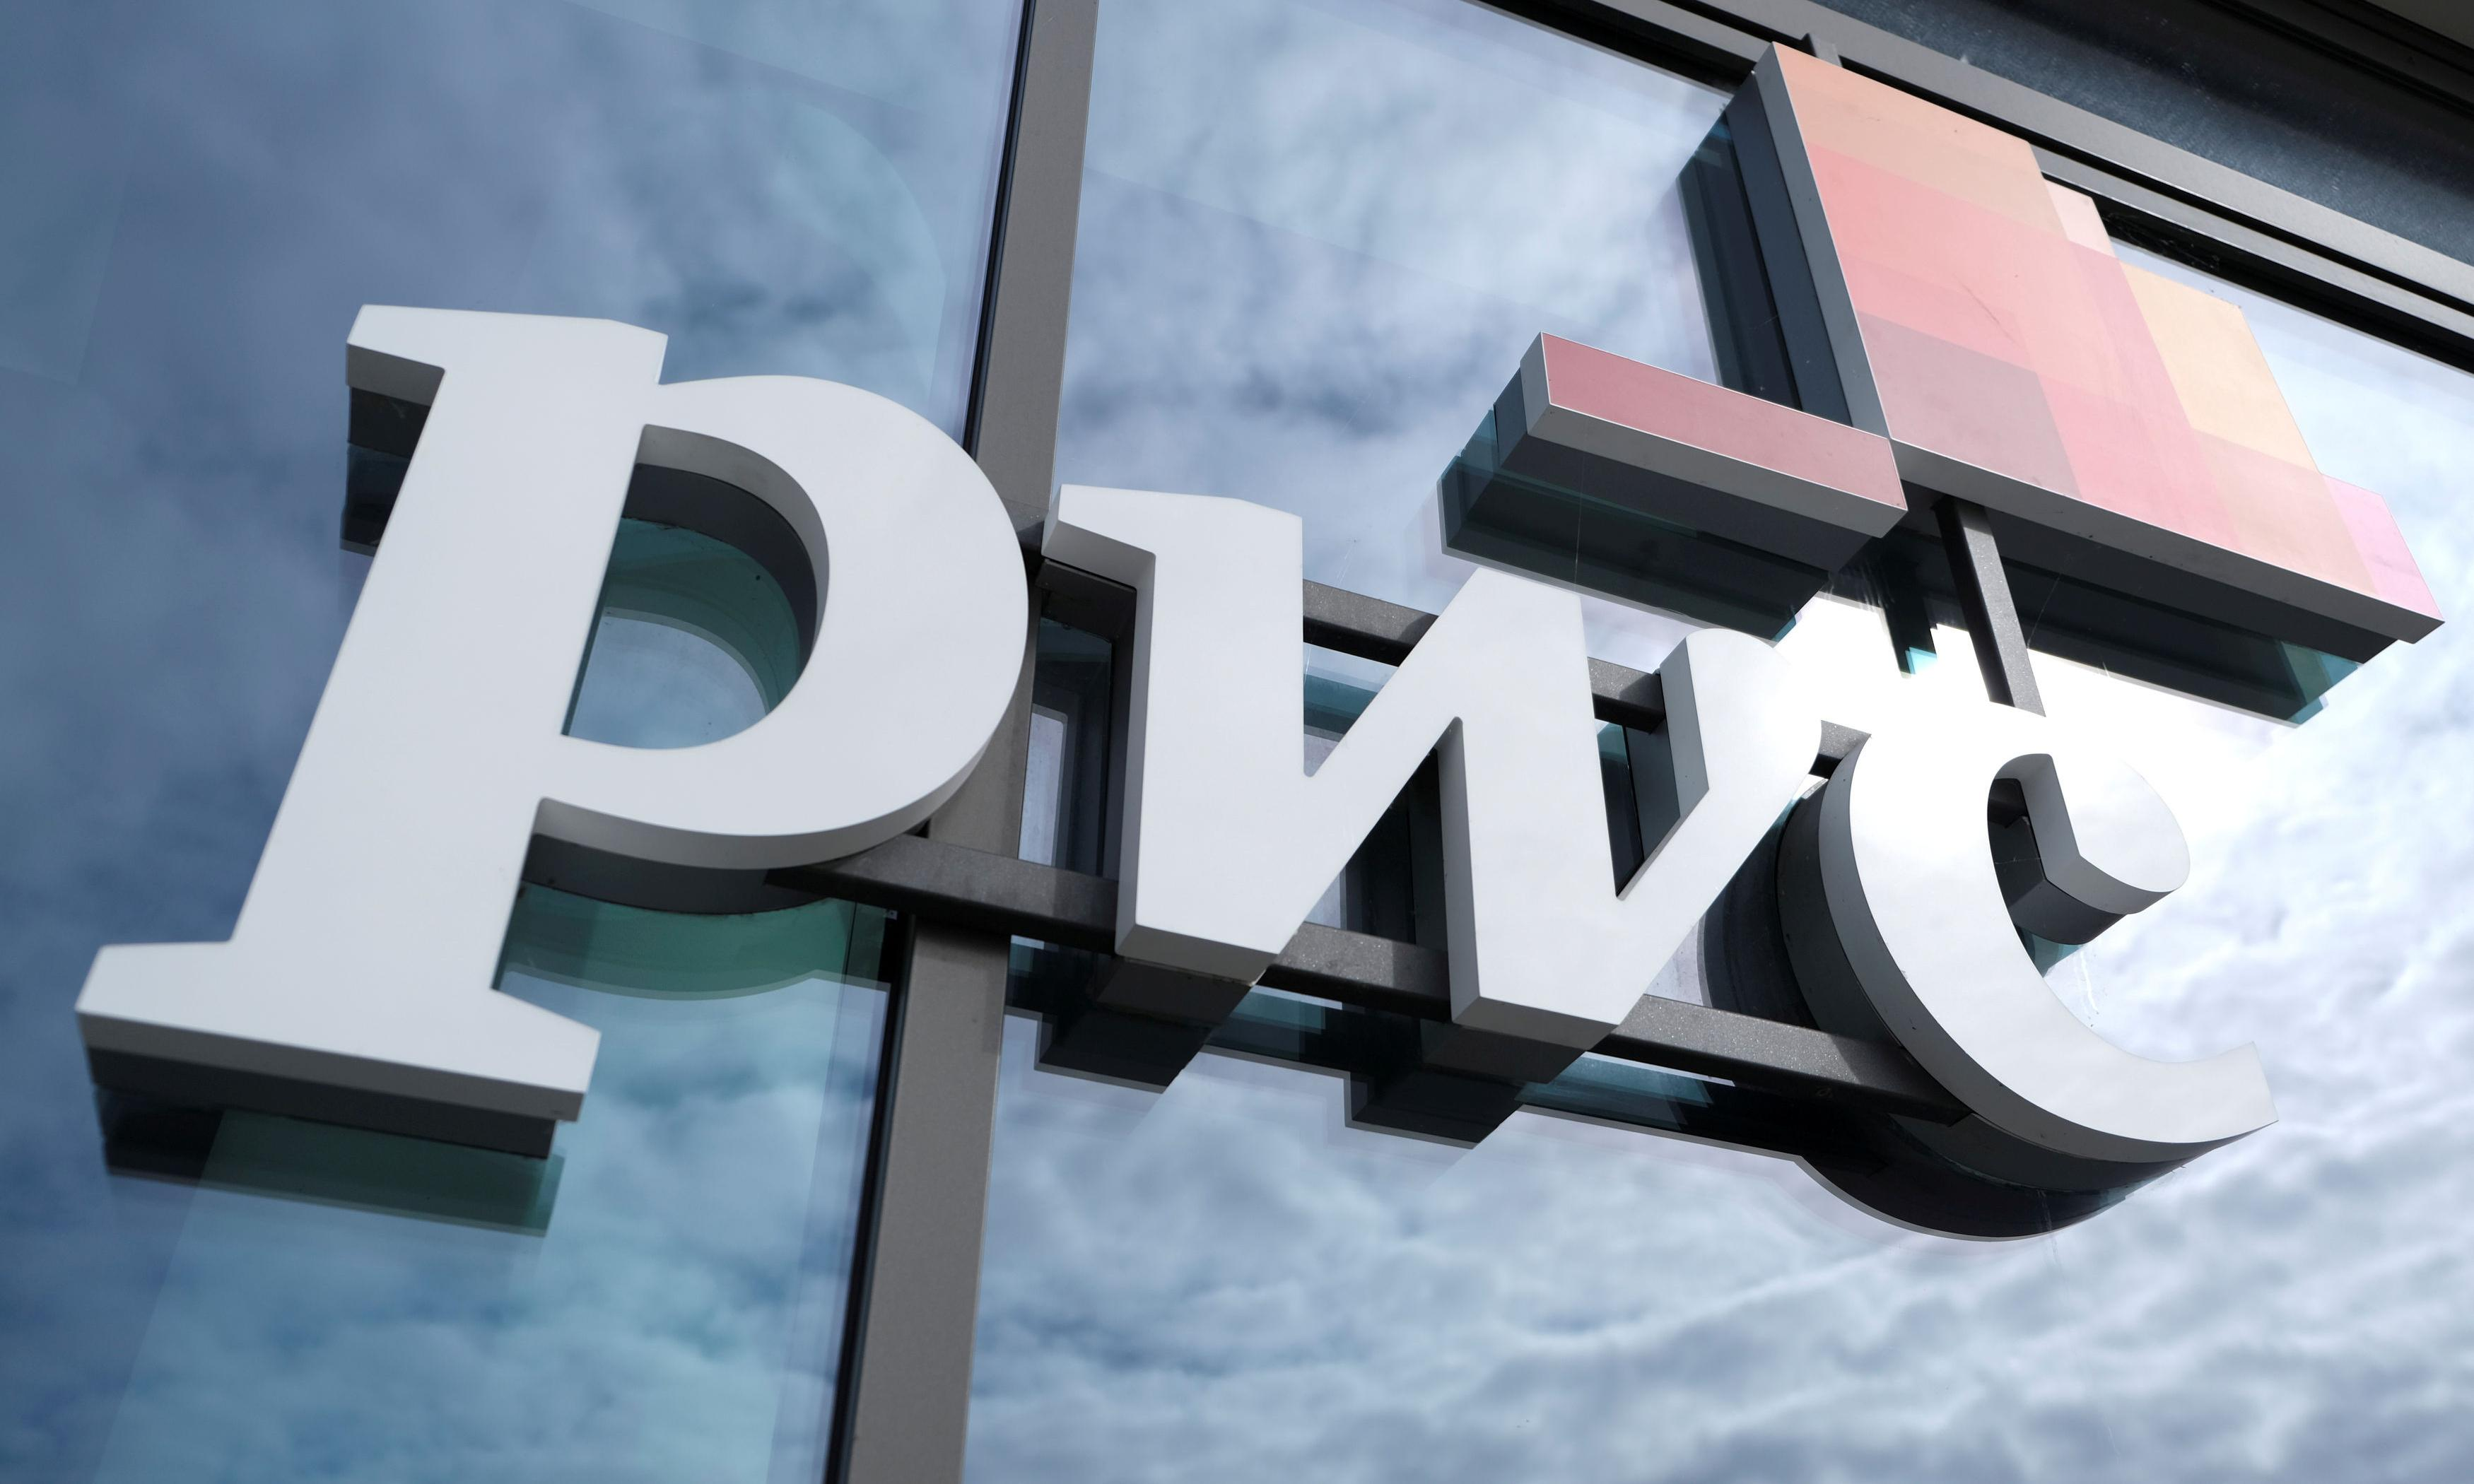 Former PwC partners share £100m windfall payout